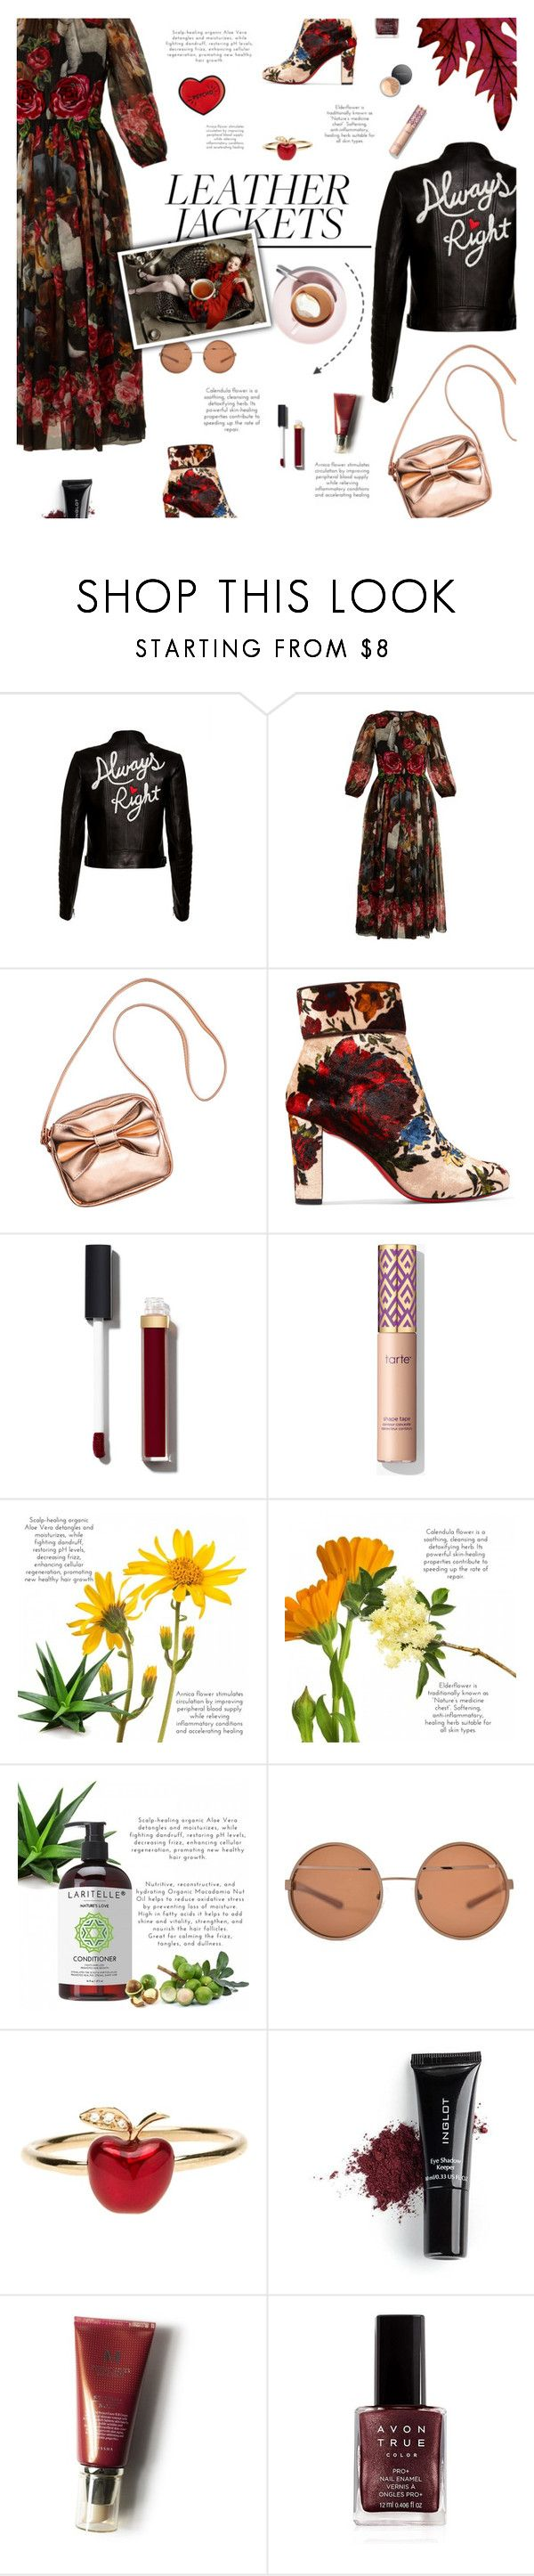 """""""Leather Jackets & Floral Prints"""" by yoa316 ❤ liked on Polyvore featuring Alice + Olivia, Dolce&Gabbana, Christian Louboutin, Chanel, Alison Lou, Inglot, Avon, Bare Escentuals and leatherjackets"""